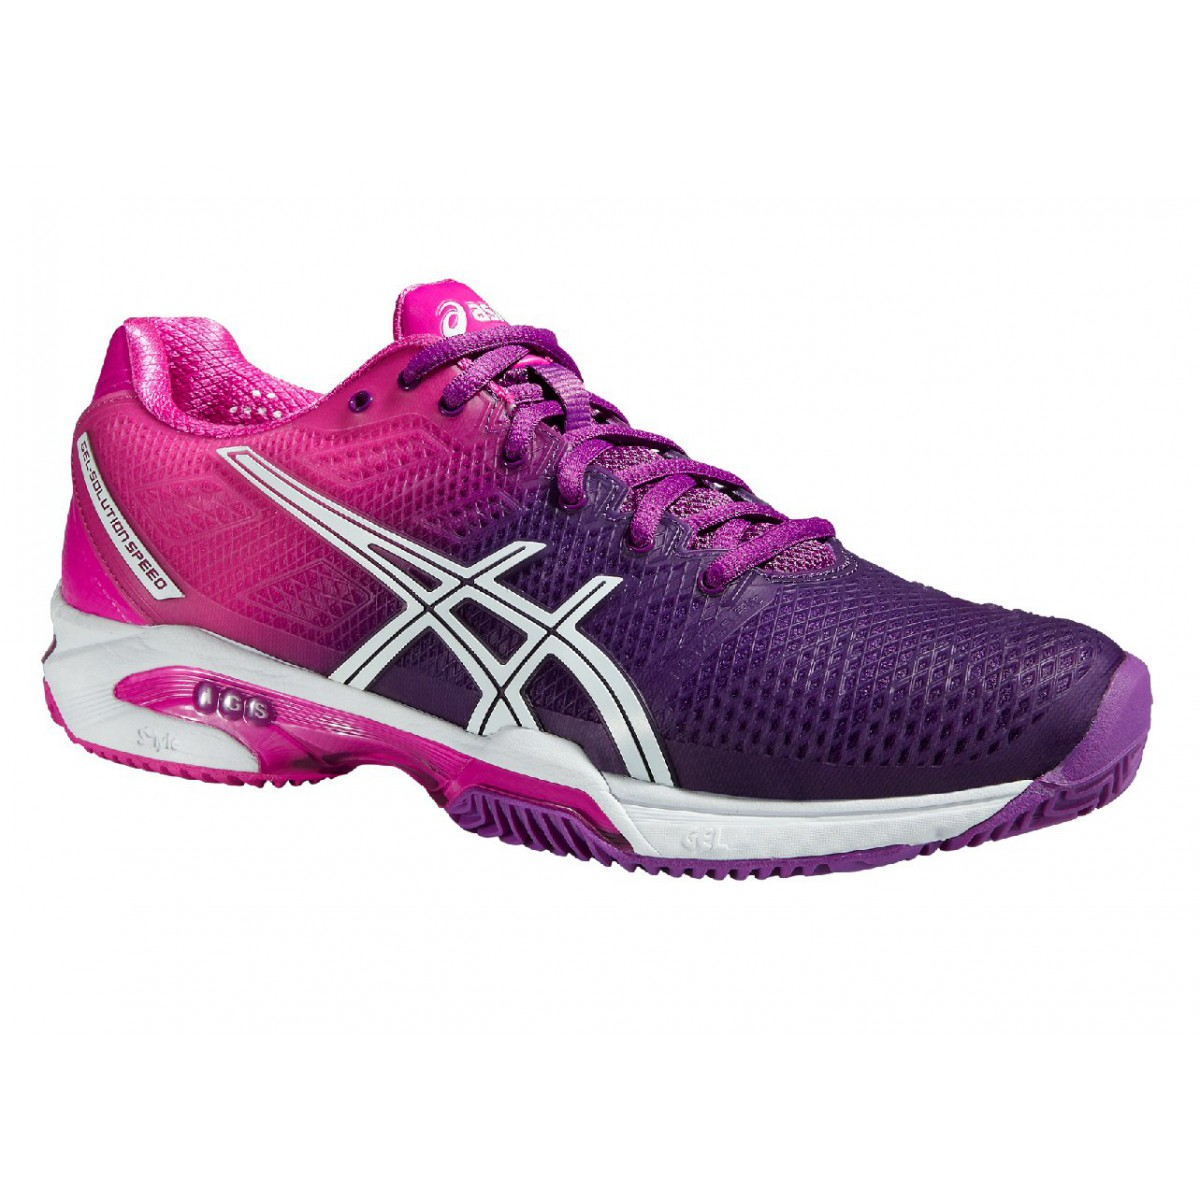 asics gel solution speed 2 clay 2015 hotpink tennisschuhe damen versandkostenfrei online bestellen. Black Bedroom Furniture Sets. Home Design Ideas